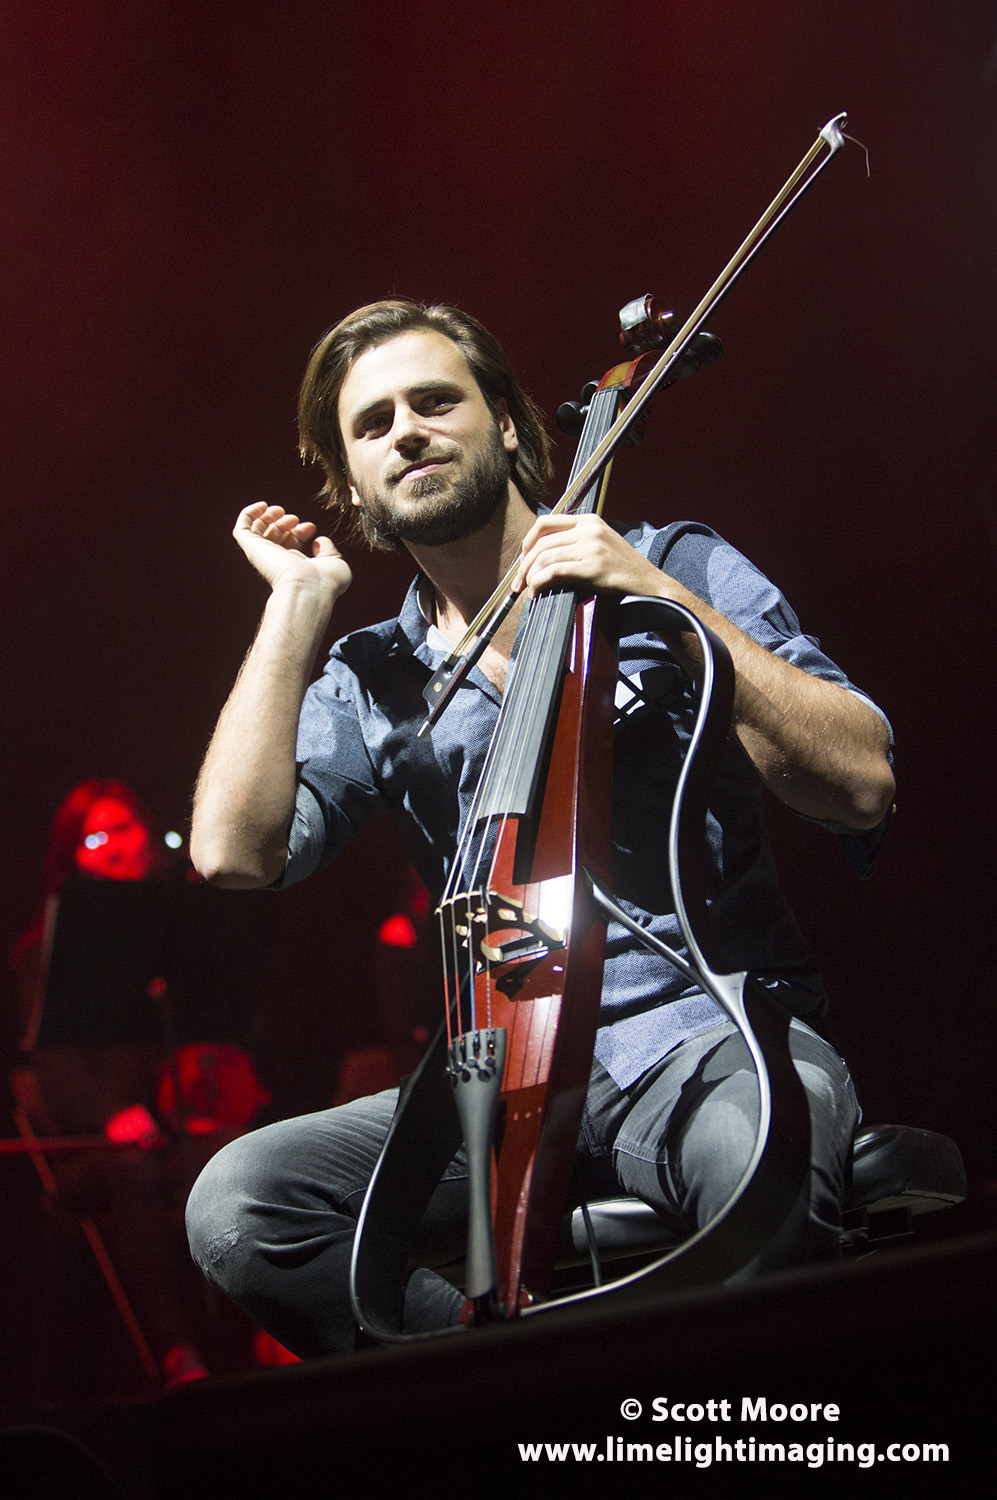 2CELLOS Rock-out At Erwin Center | Covering the Limelight in ATX